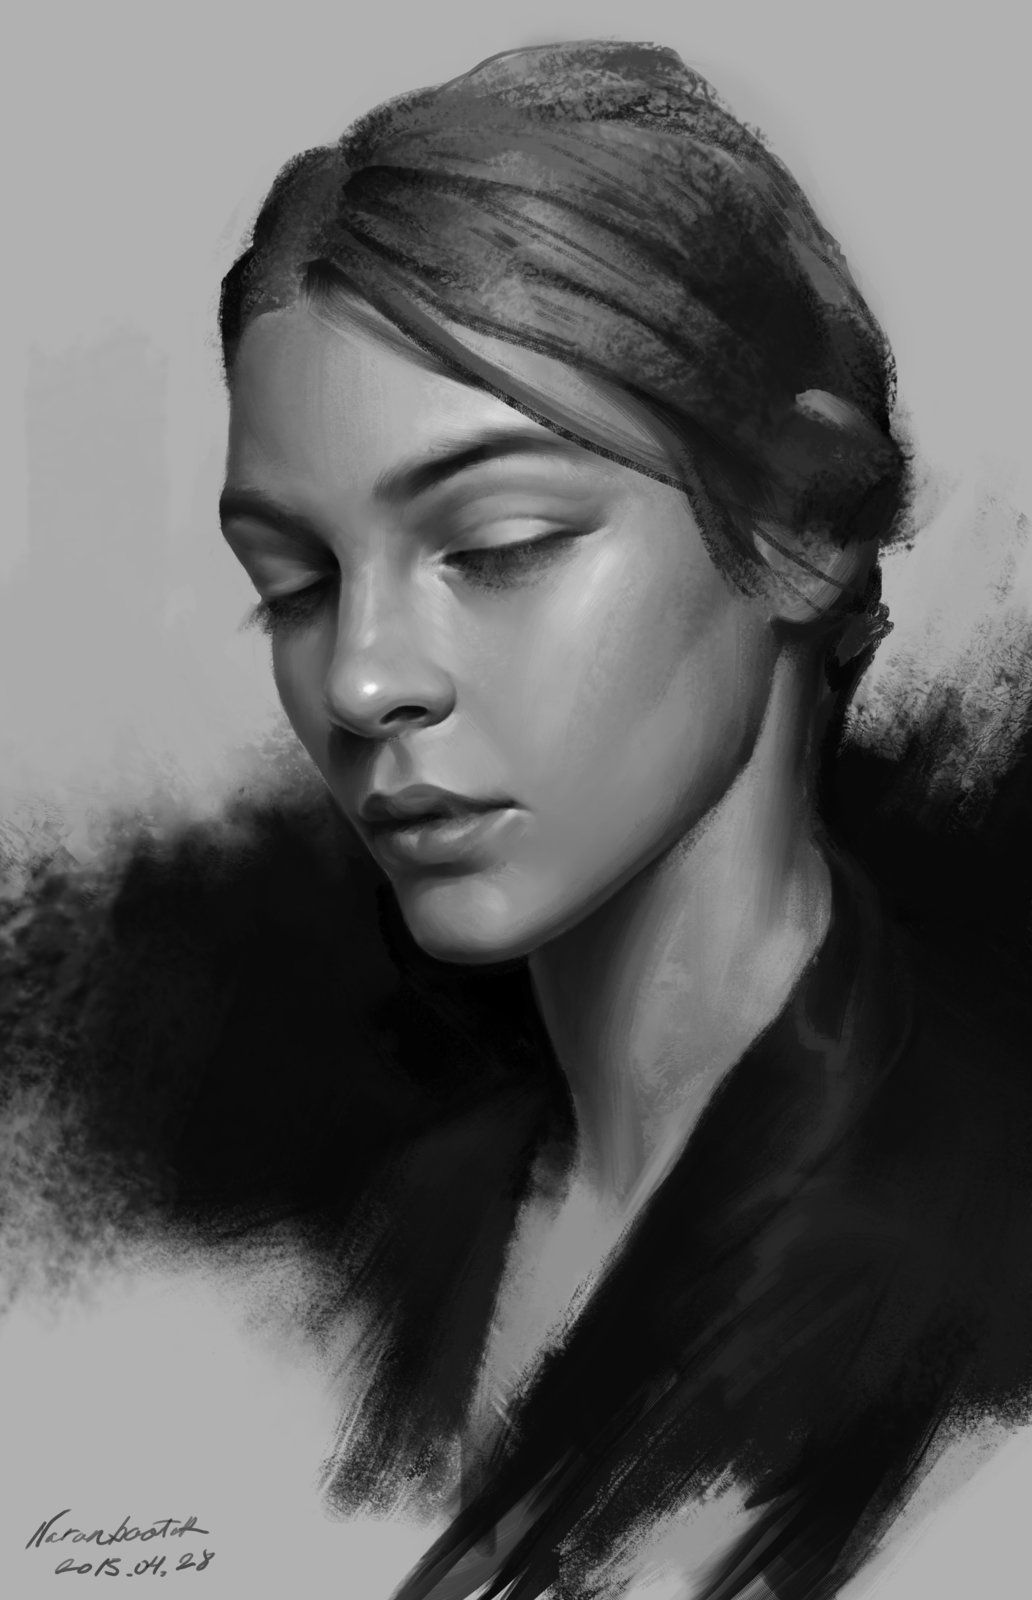 Value Study - Digital Painting - YouTube